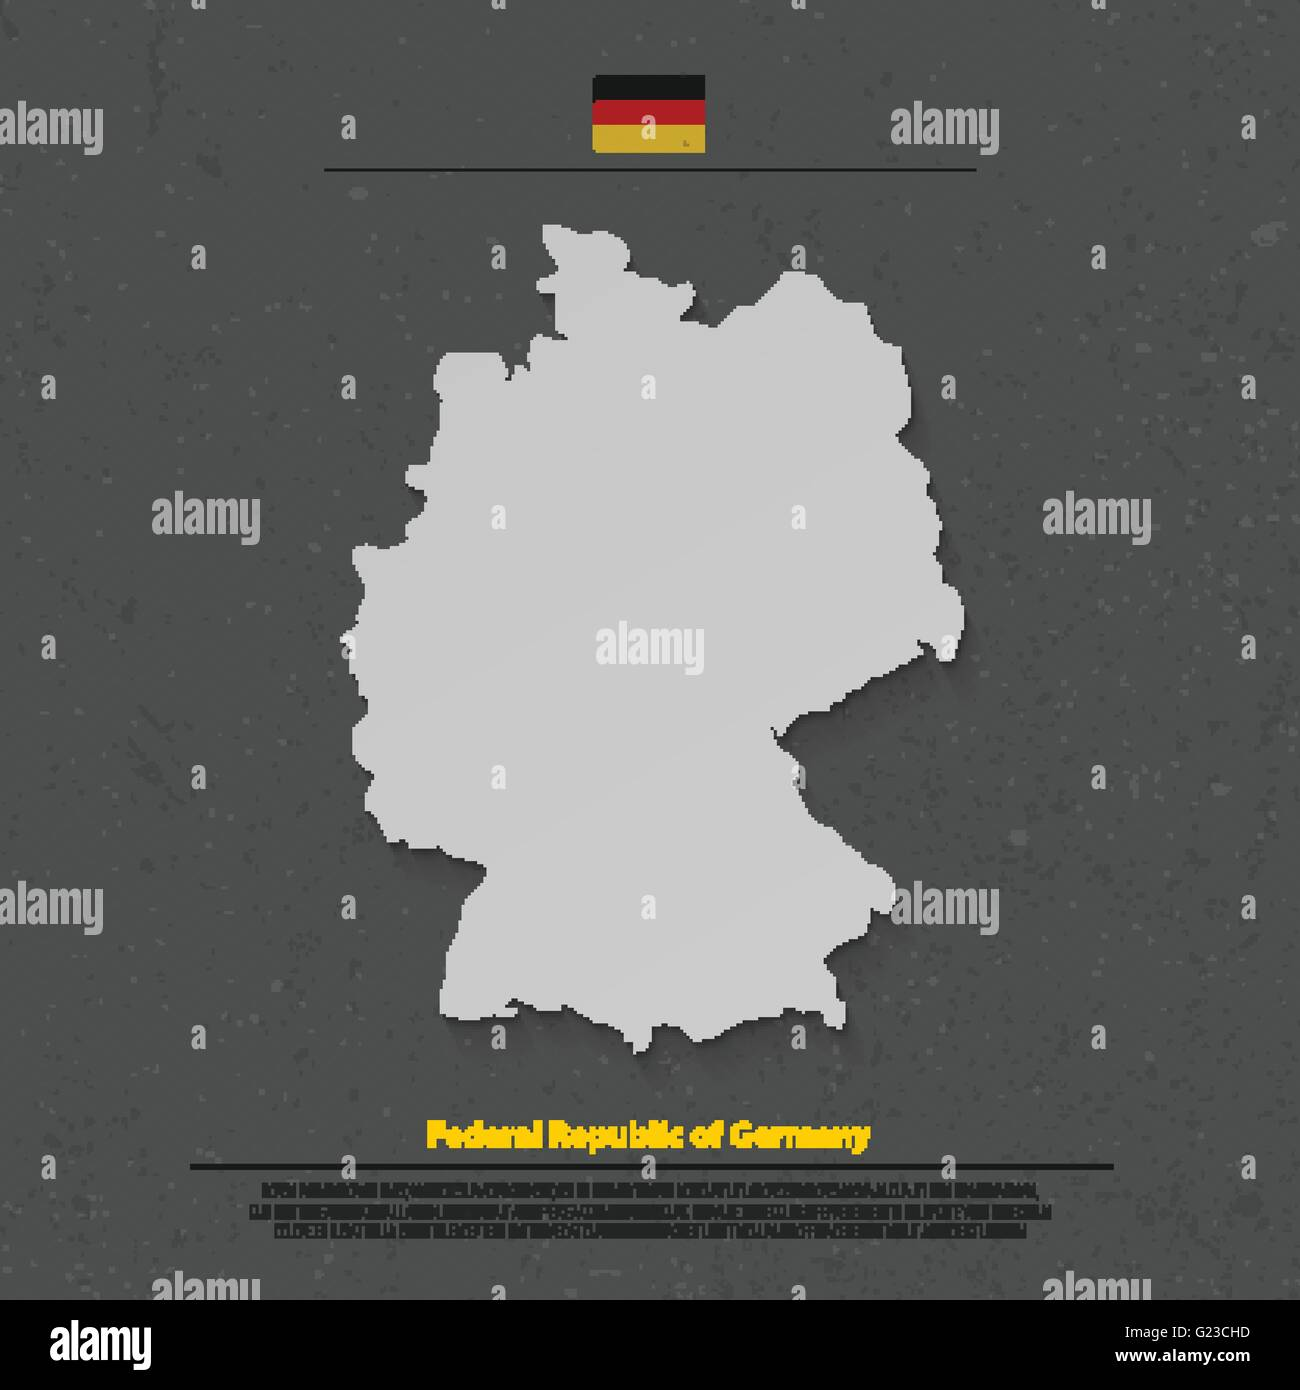 Federal Republic Of Germany Map And Official Flag Icon Over Dark  Background. Vector German Political Map 3d Illustration. Europe